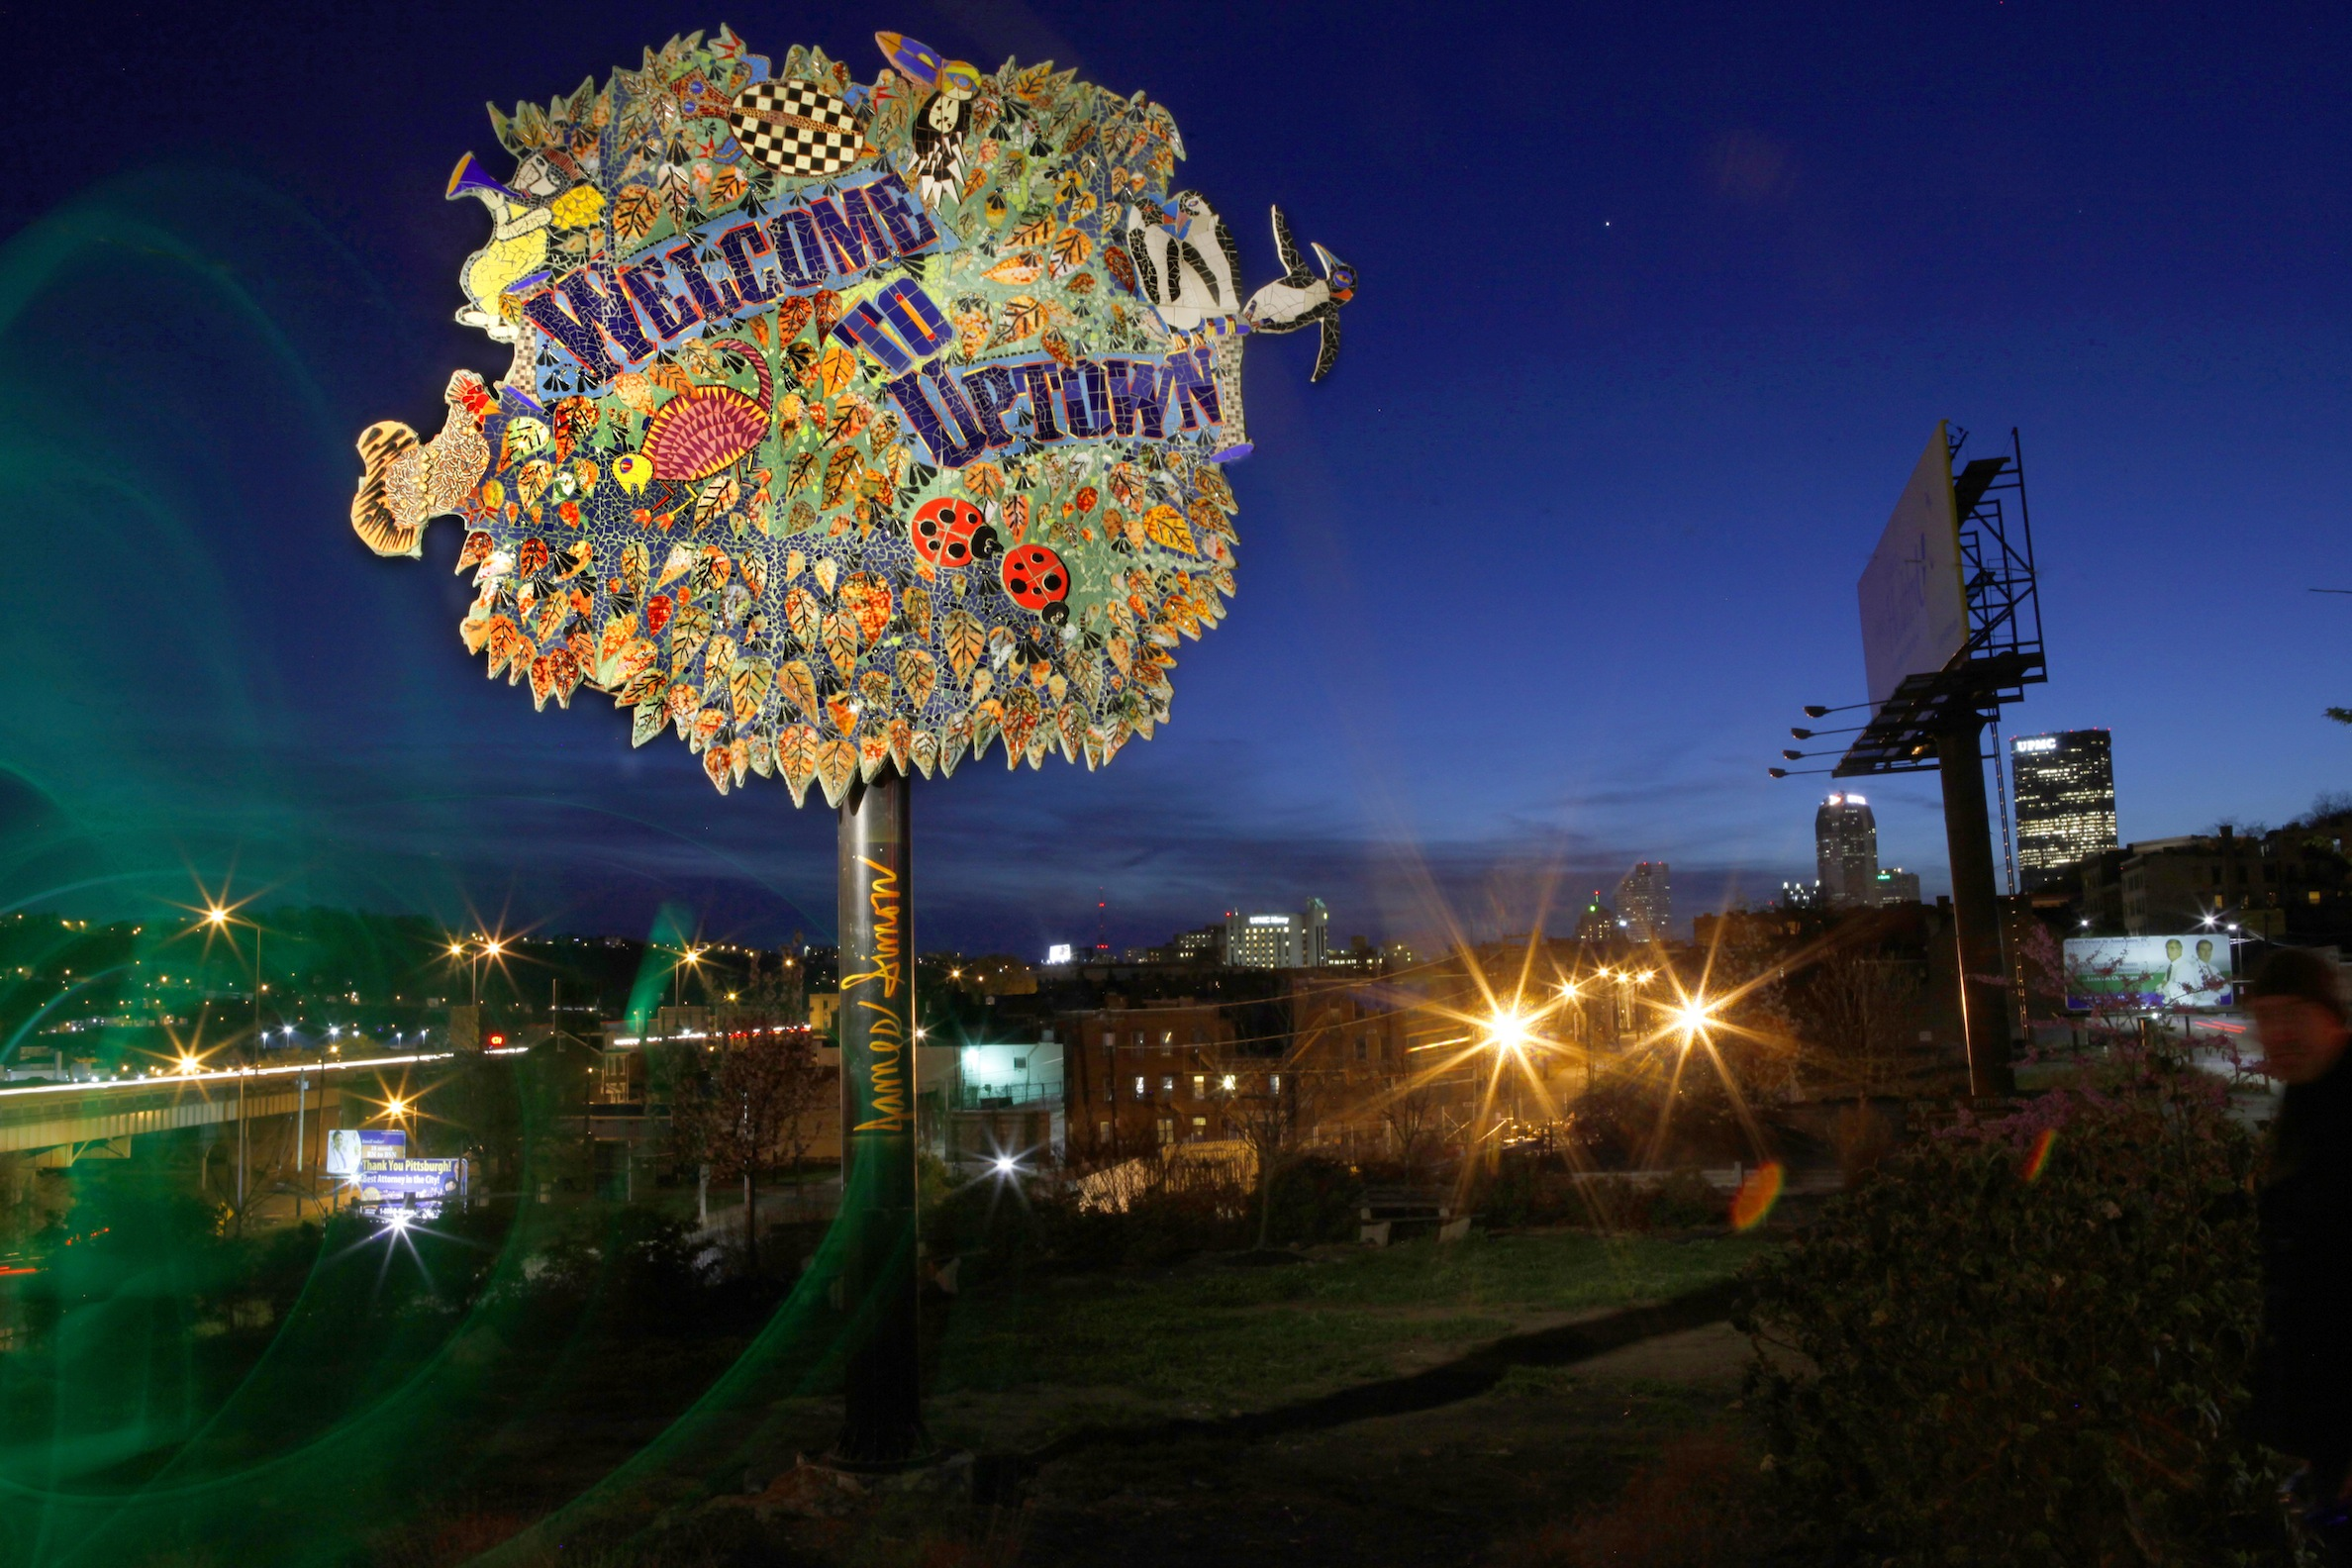 Uptown Welcome sign by James Simon. Photo by Heather Mull.